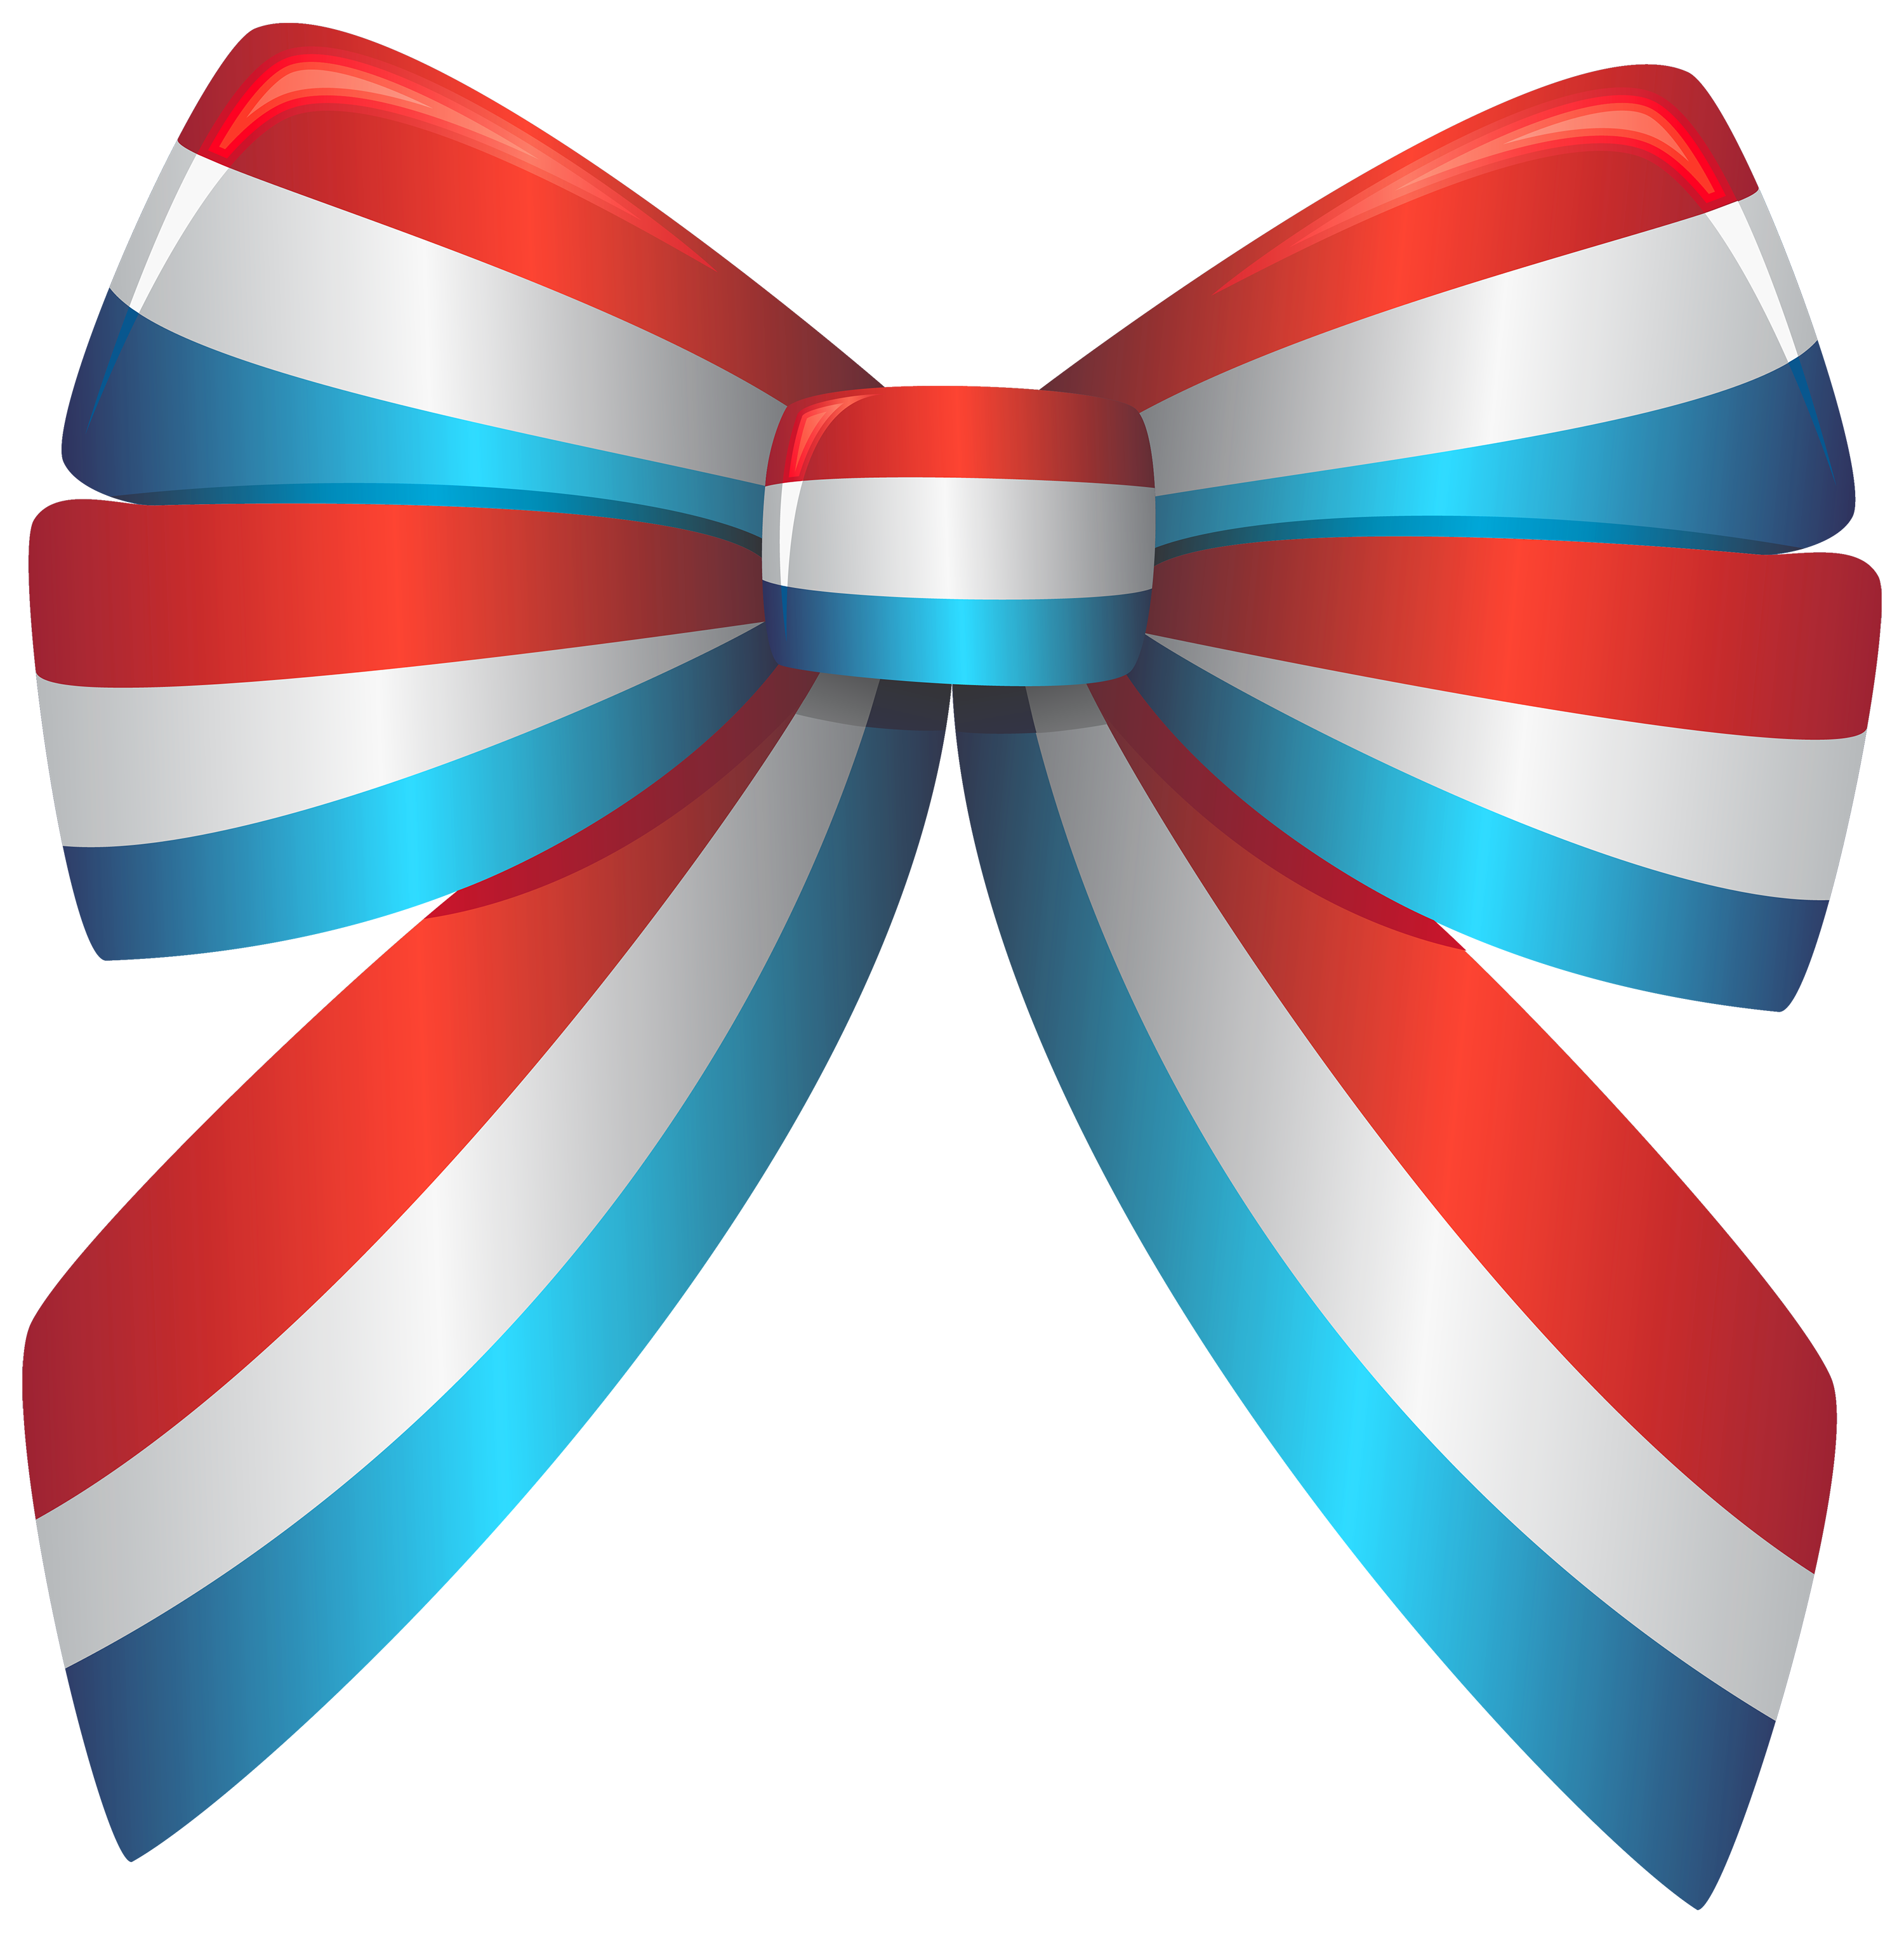 Red White and Blue Ribbon PNG Clipart.